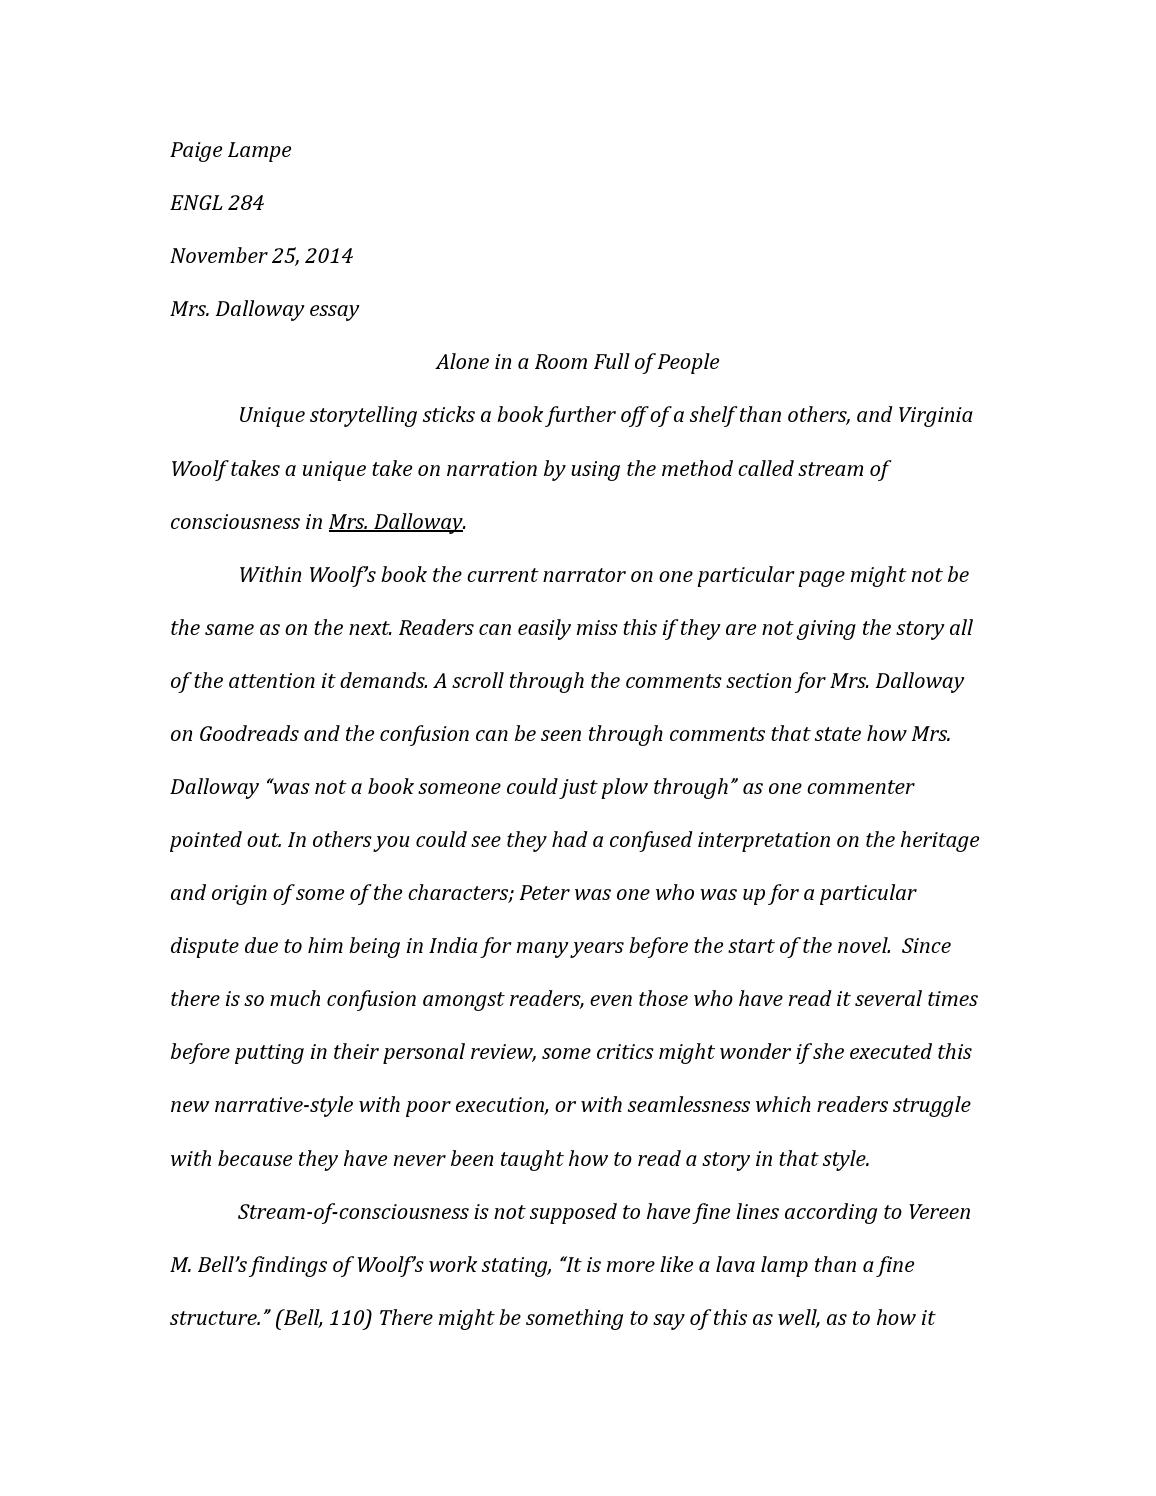 002 Mrs Dalloway Essay Page 1 Marvelous Analysis Critical Essays Full